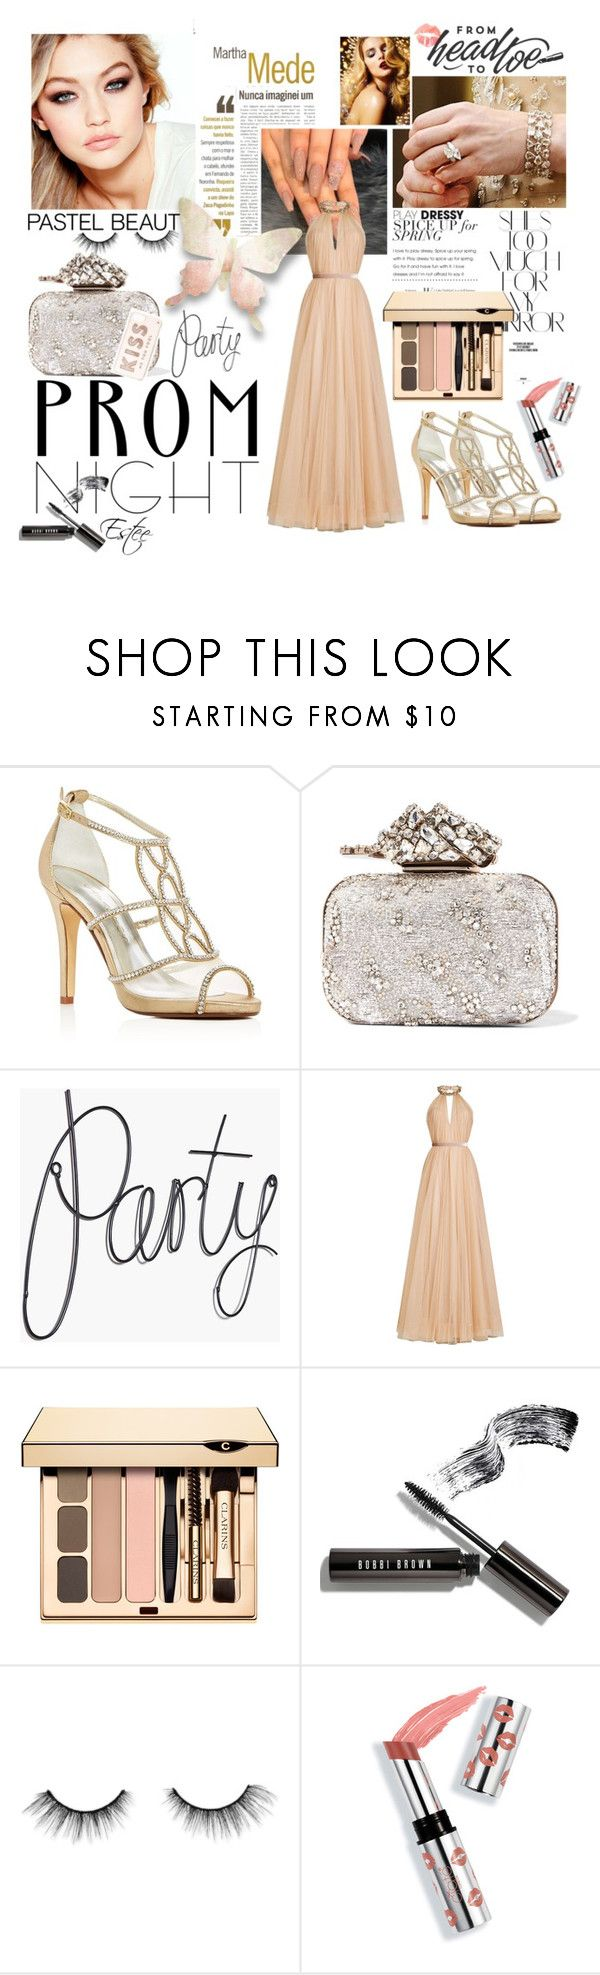 """""""Best Prom Night"""" by estee-zilberman ❤ liked on Polyvore featuring Martha Medeiros, Caparros, Jimmy Choo, Maybelline, Jenny Packham, Rika, Bobbi Brown Cosmetics, tarte, Ciaté and Kate Spade"""